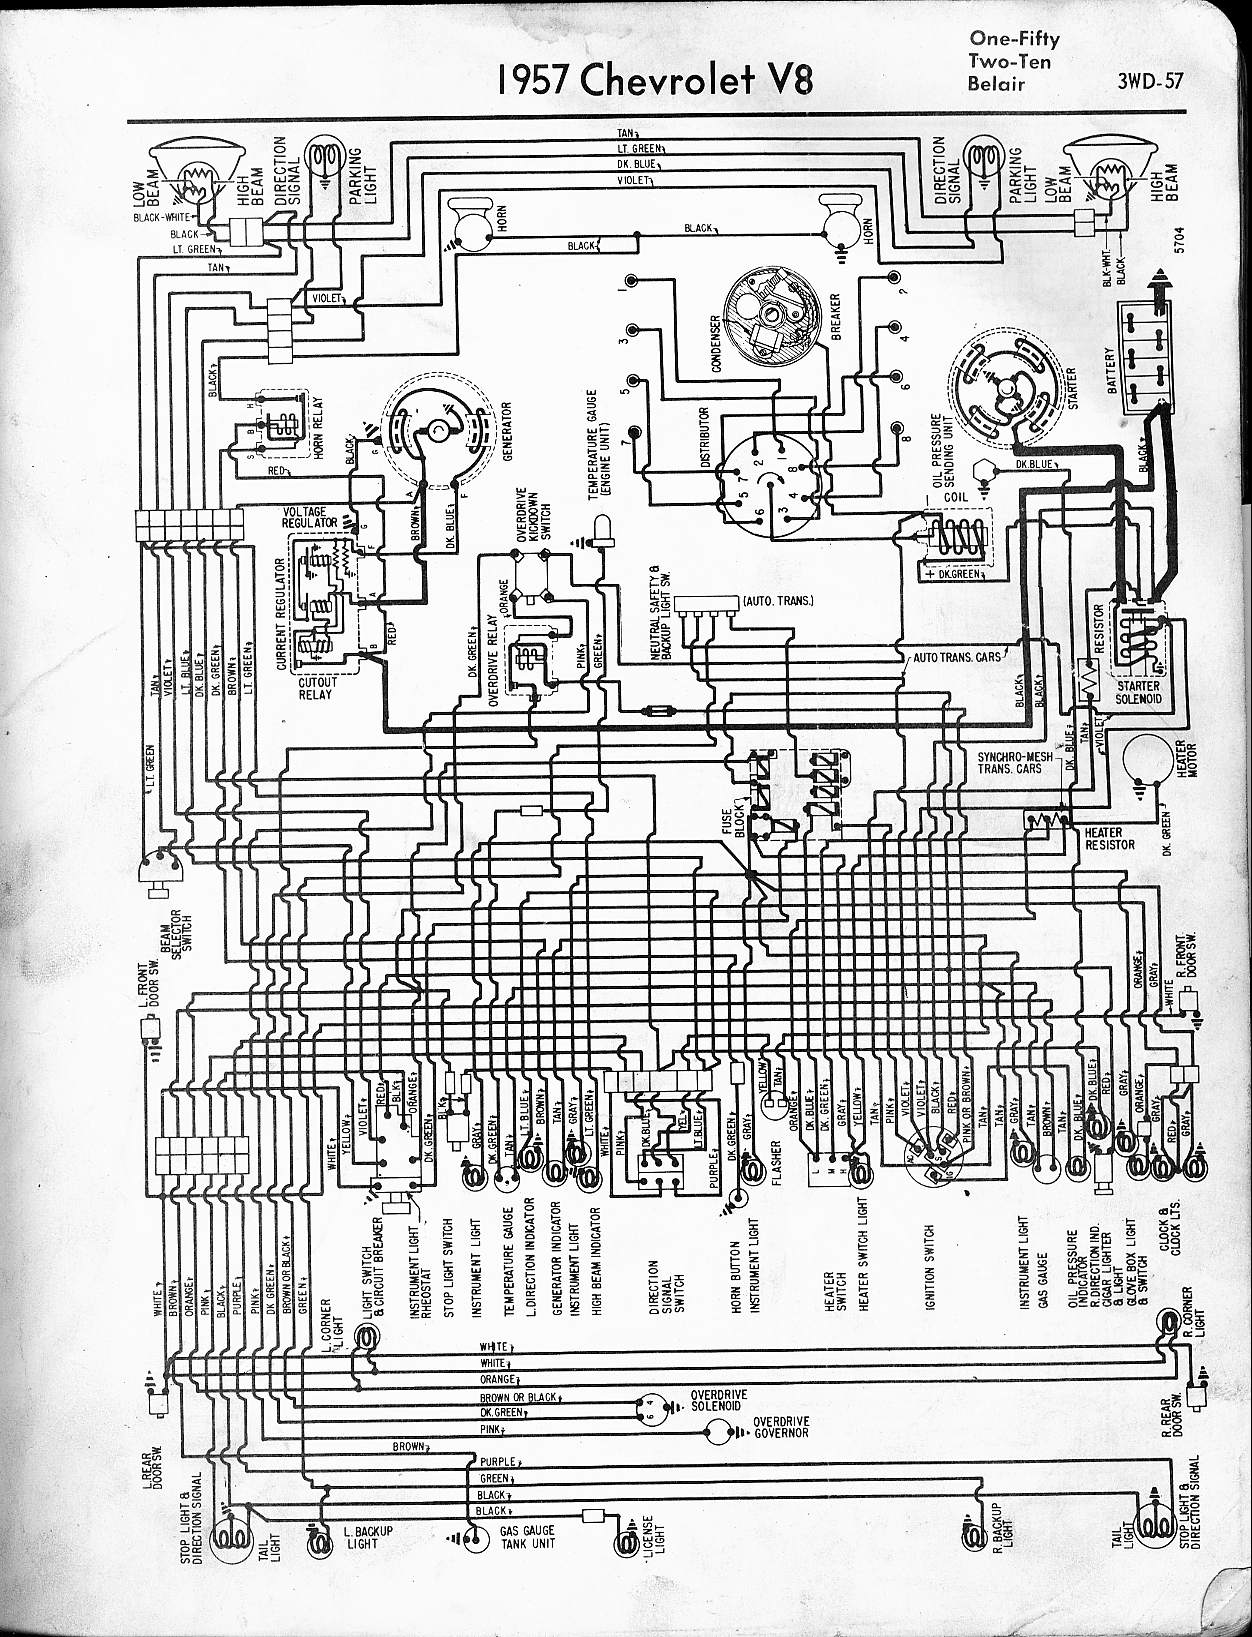 Chevy Truck Air Wiring Block And Schematic Diagrams Whirlpool Lfe5800wo 1957 Pickup Harness Electrical Rh Cytrus Co 1973 Diagram Tbi